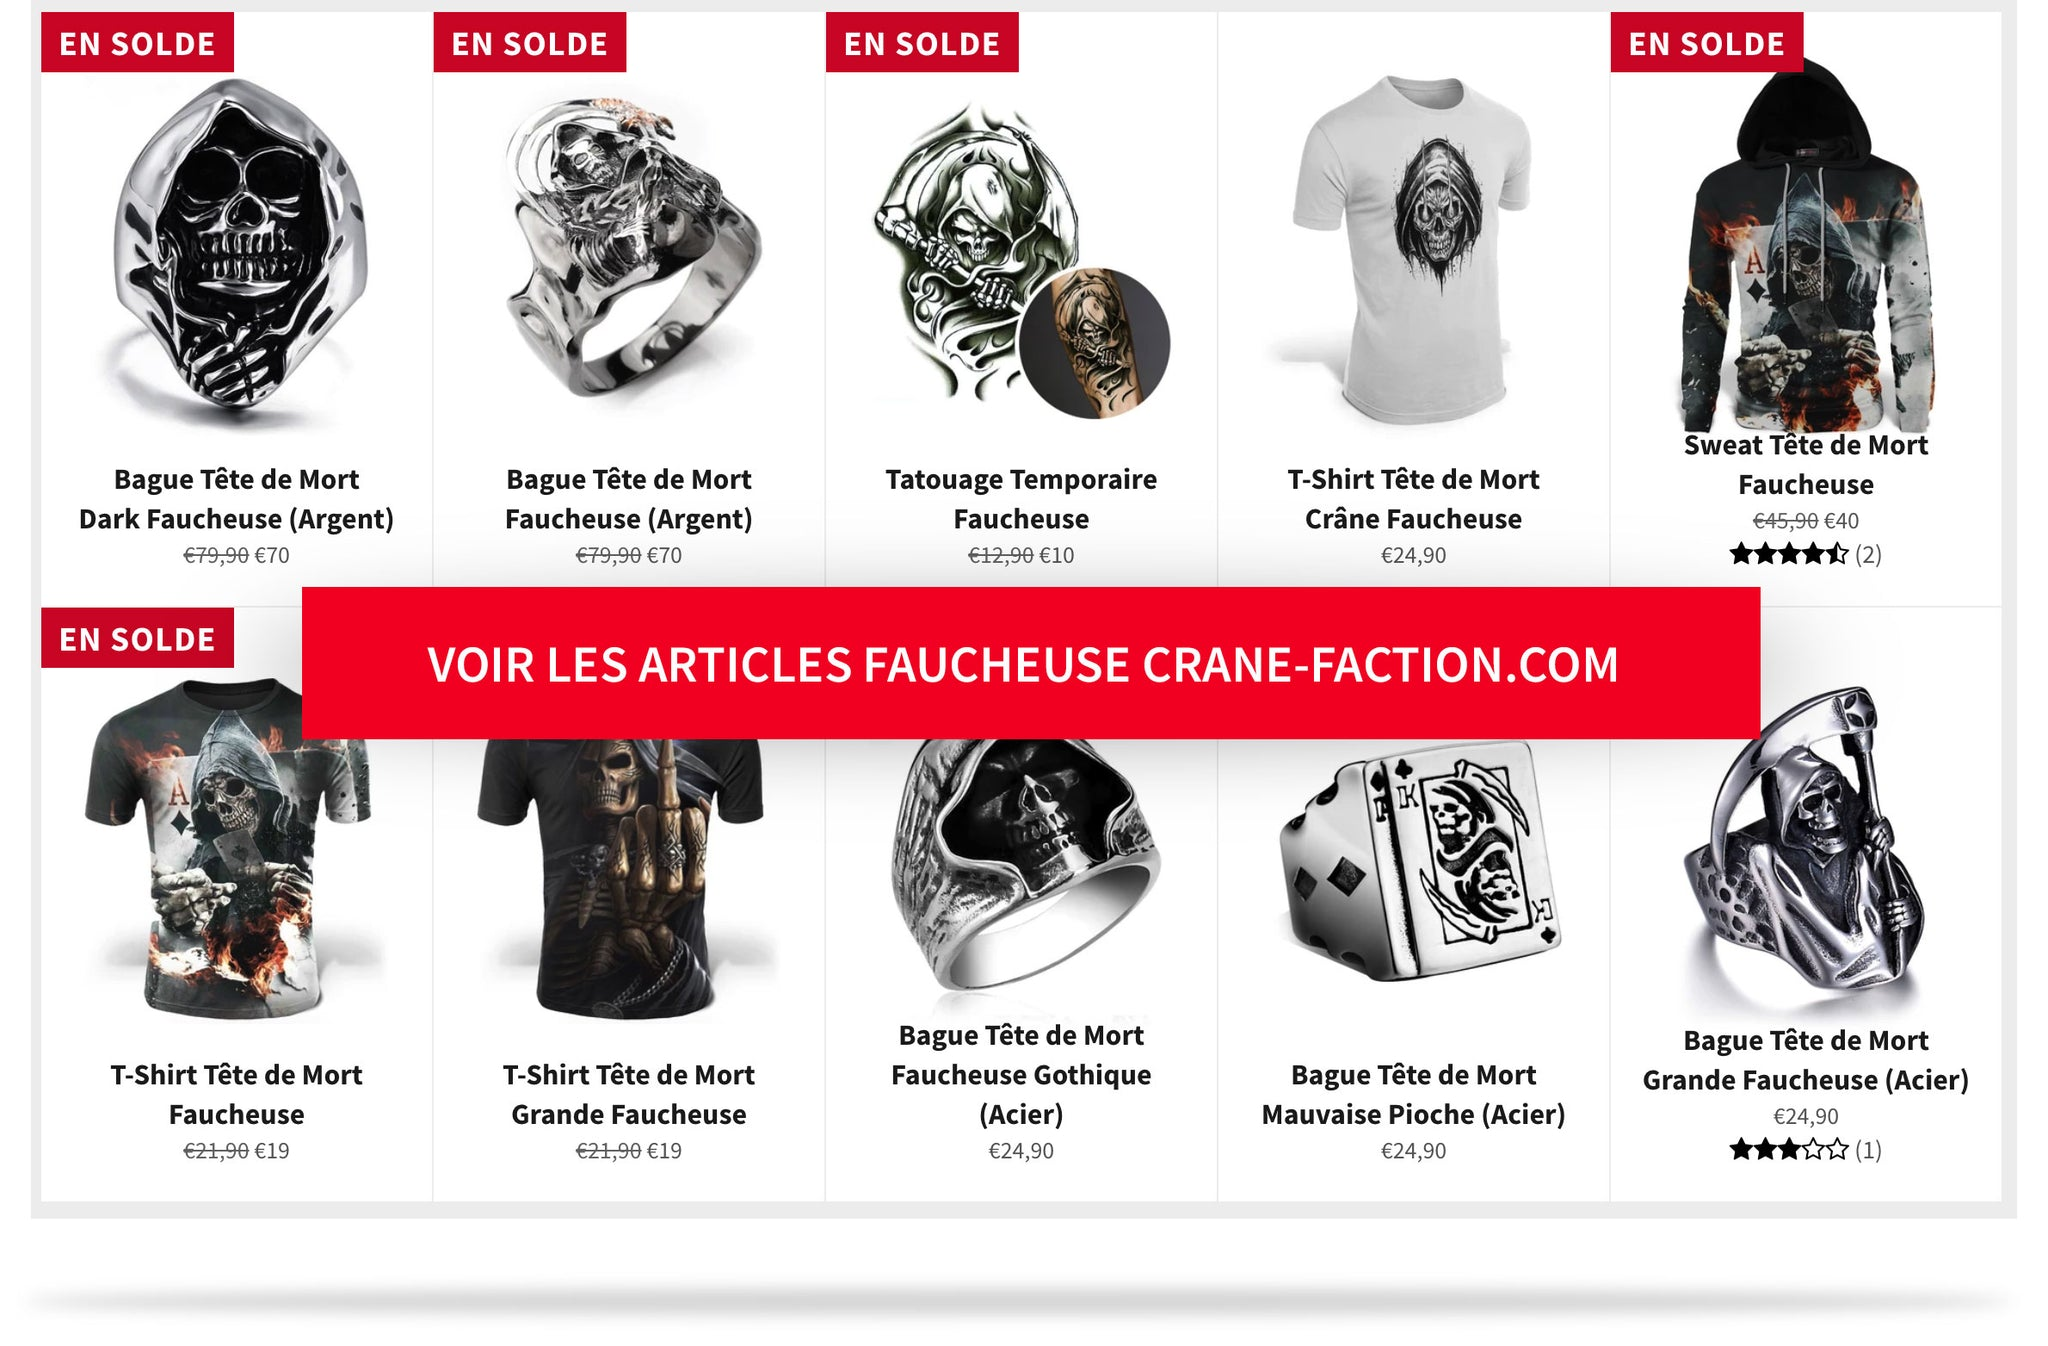 Collections Grande Faucheuse